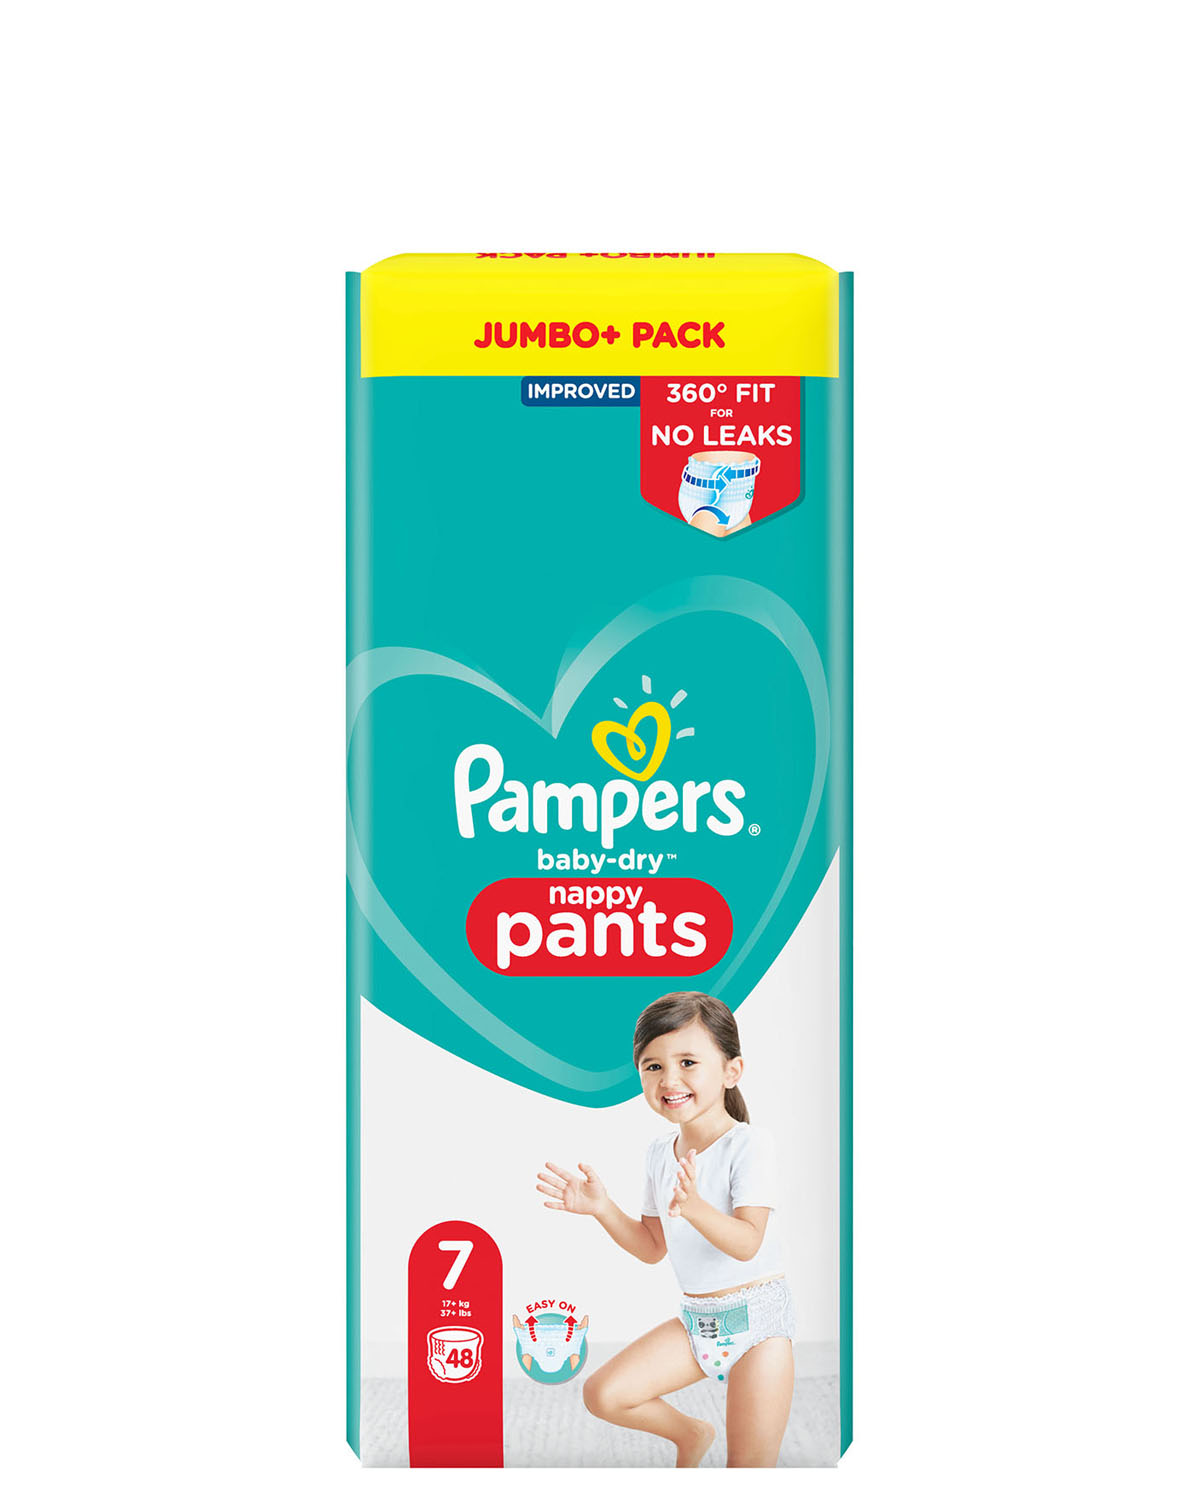 Pampers Baby Dry Pants Size: 7 48 Nappies Jumbo Pack